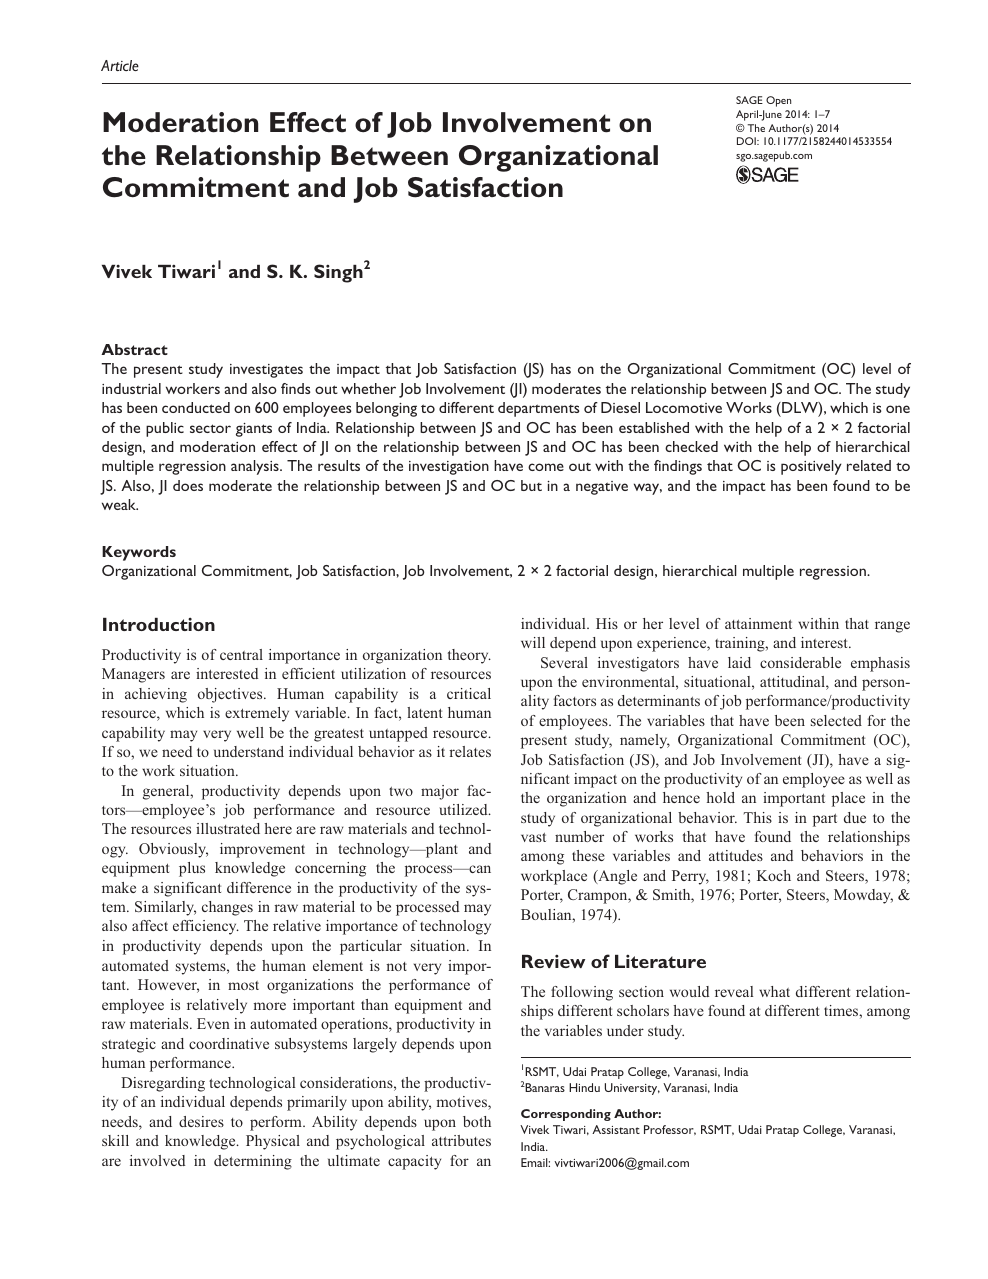 Moderation Effect of Job Involvement on the Relationship Between